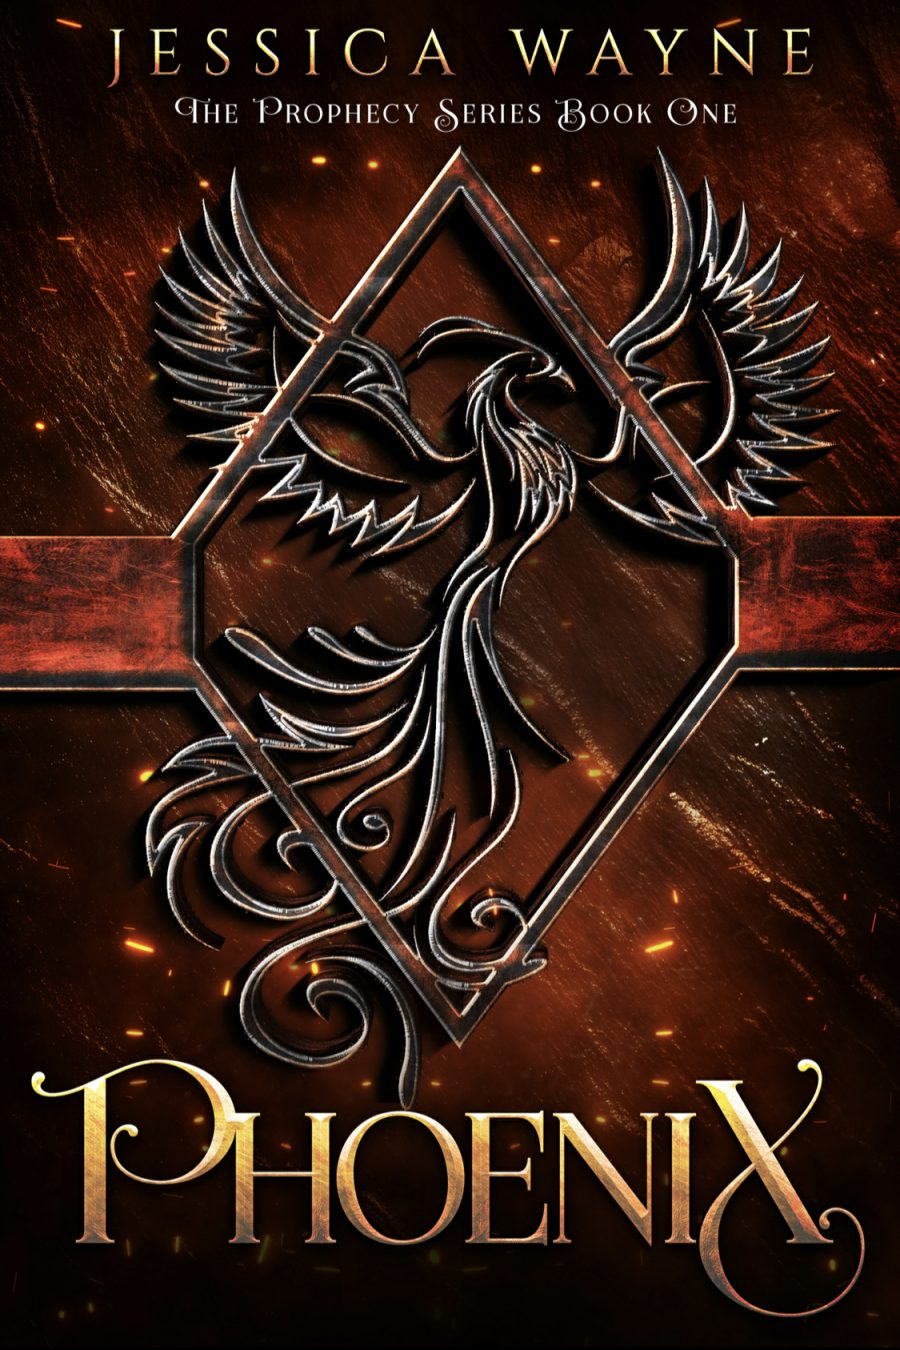 Phoenix (The Prophecy Series - Book 1) by Jessica Wayne - A Book Review #BookReview #UrbanFantasy #Fantasy #SeriesComplete #4Stars #Magic #KindleUnlimited #KU